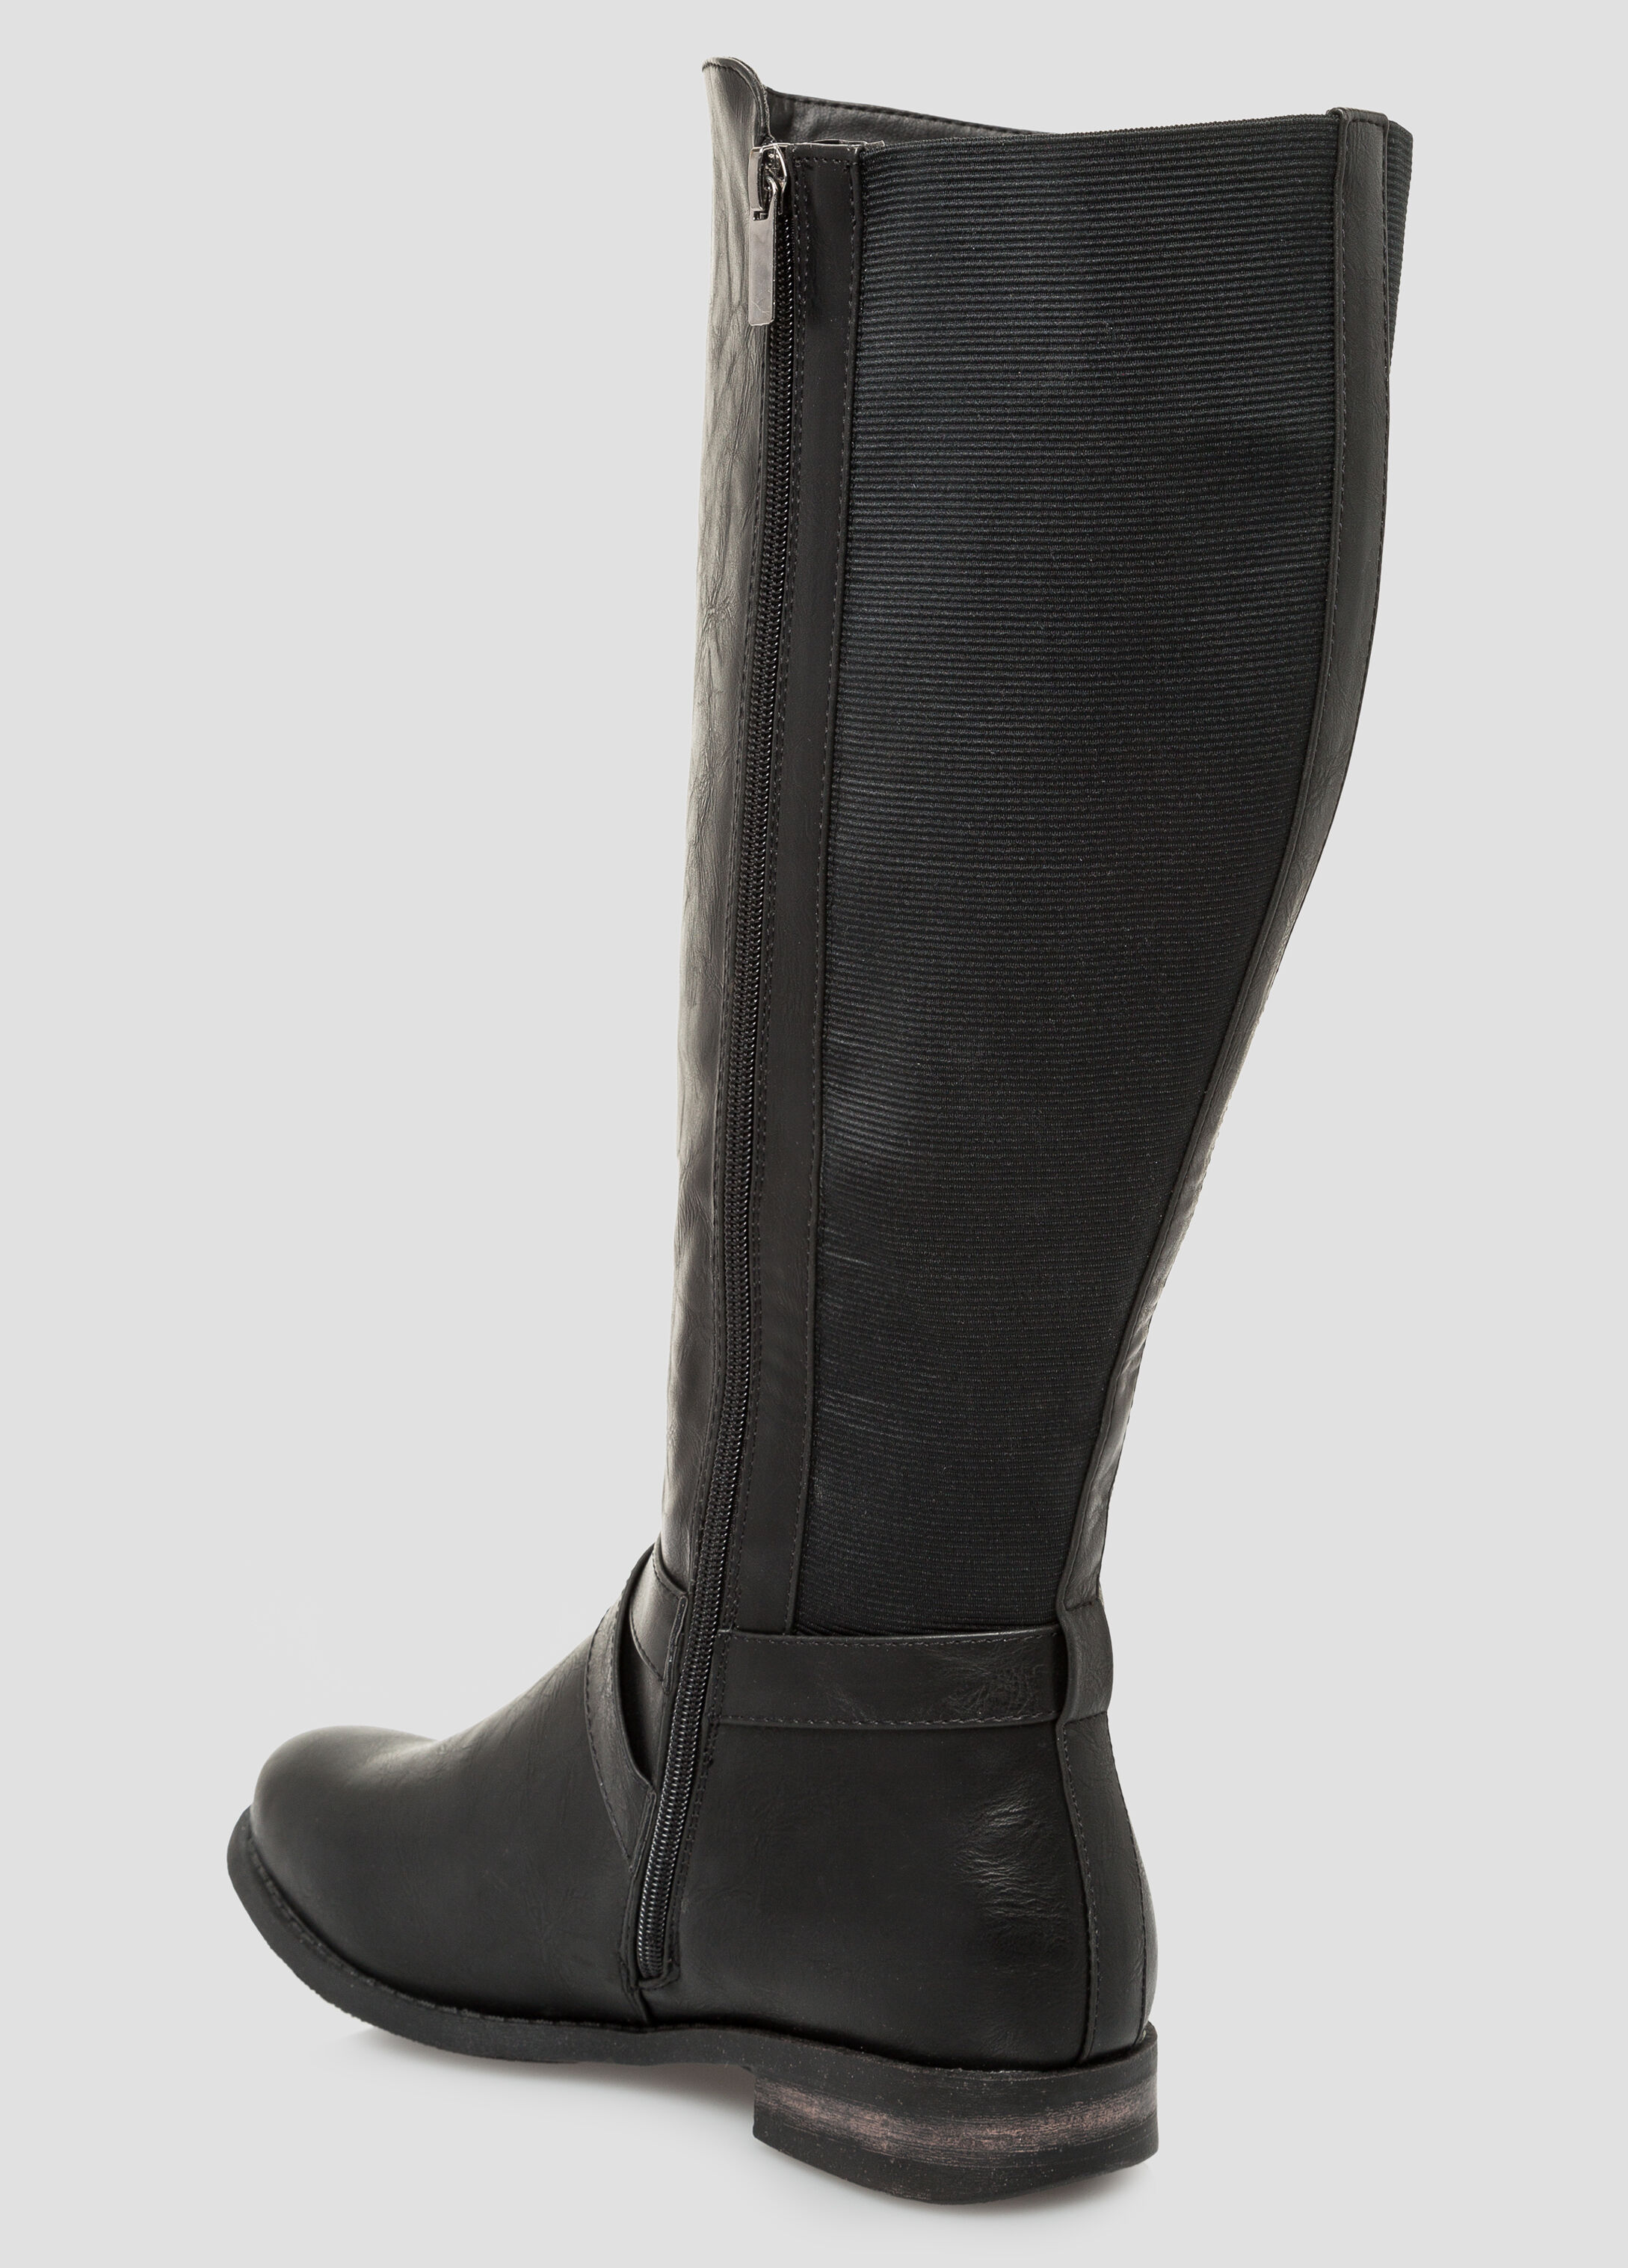 Stud Ankle Tall Boot - Extra Wide Width, Extra Wide Calf